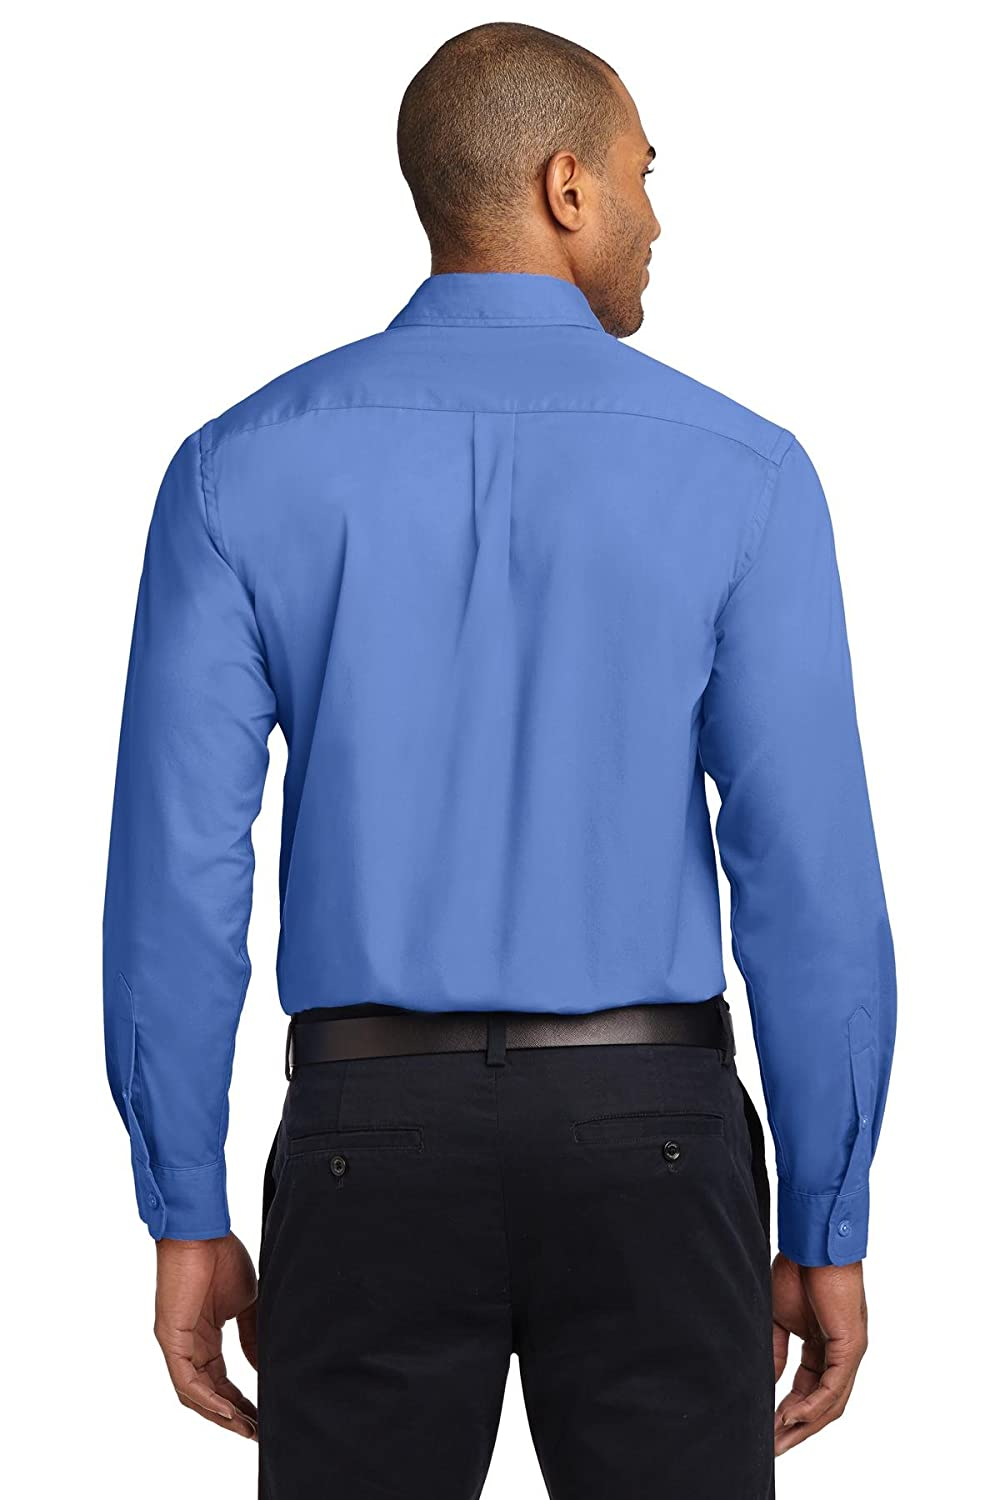 S608 Port Authority Mens Long Sleeve Easy Care Shirt